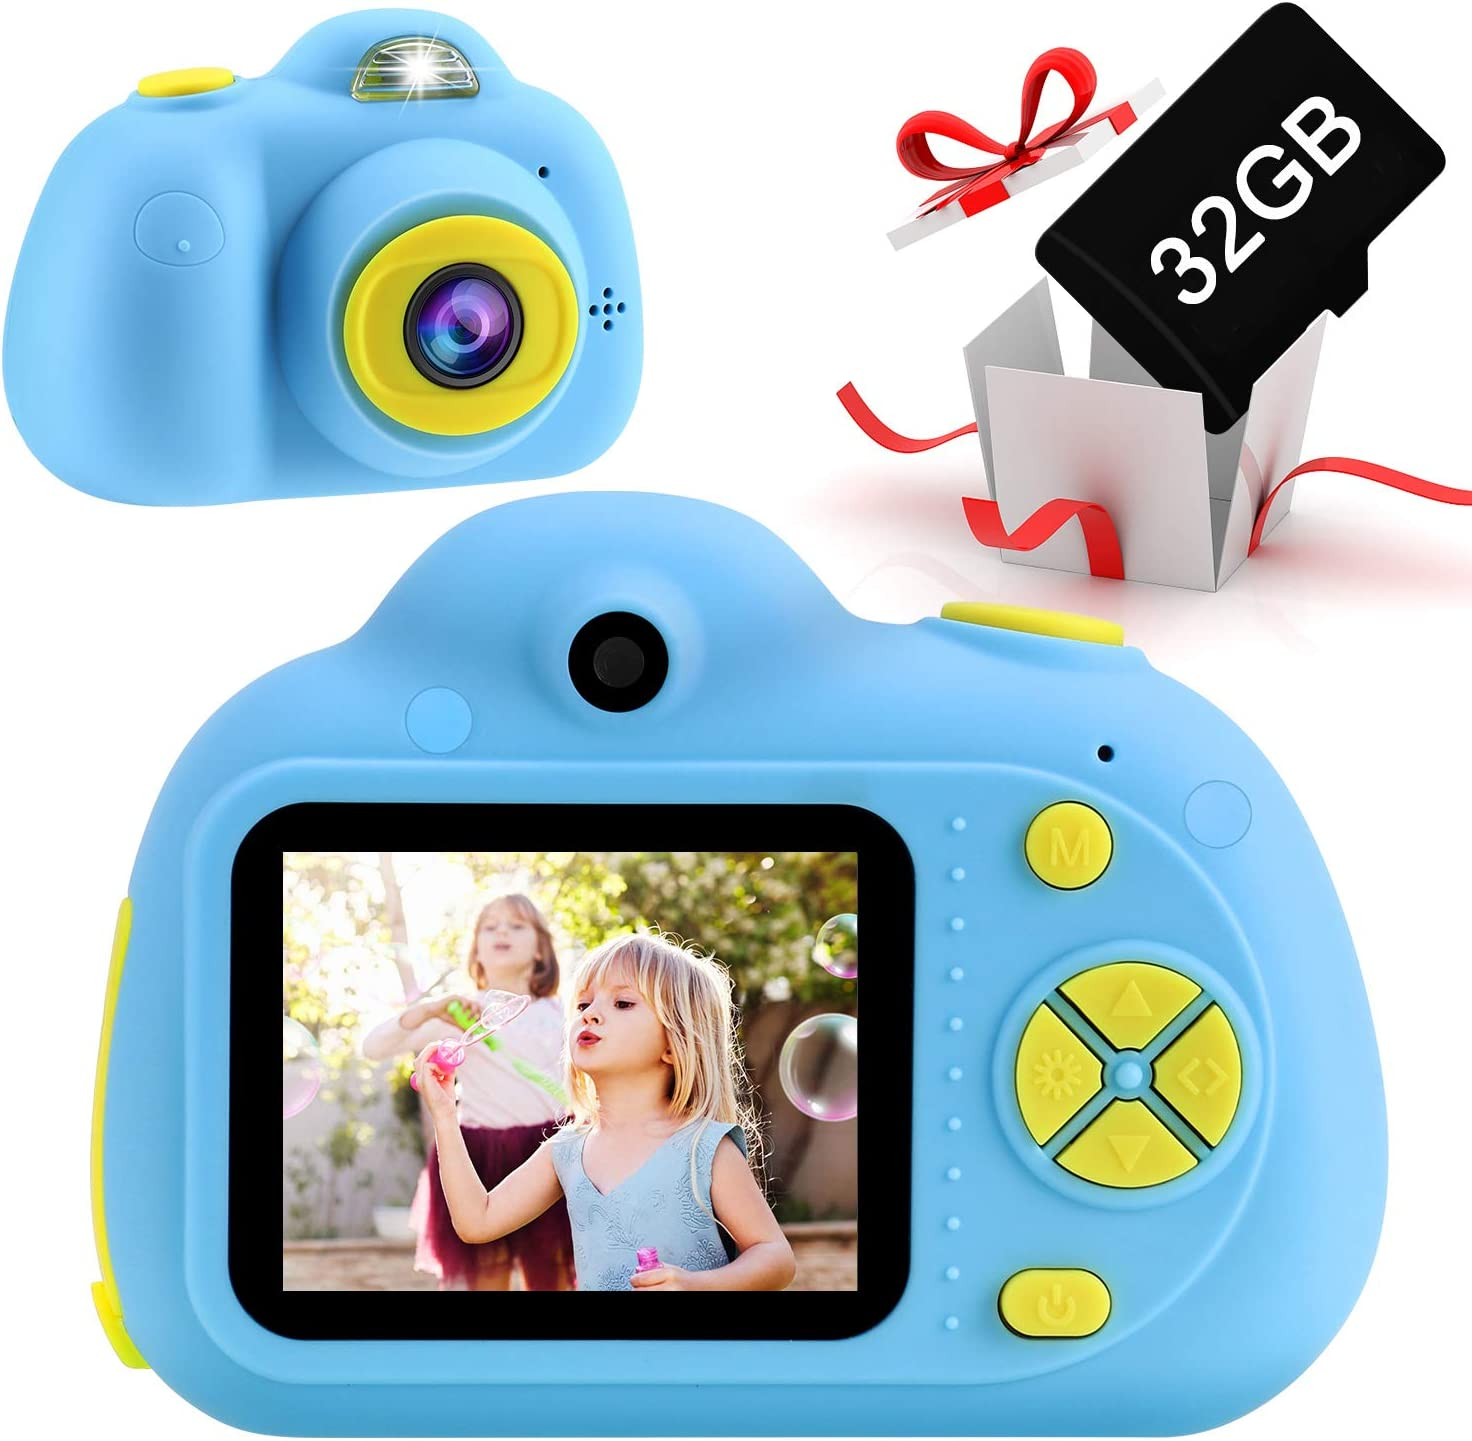 Toddler Camera Birthday Gift for Age 3 4 5 6 7 8 9 10 with 32GB SD Card Digital Camera for Kids Toy Gift Video Recorder 1080P IPS 2 Inch SELLOTZ Kids Camera for Boys and Girls